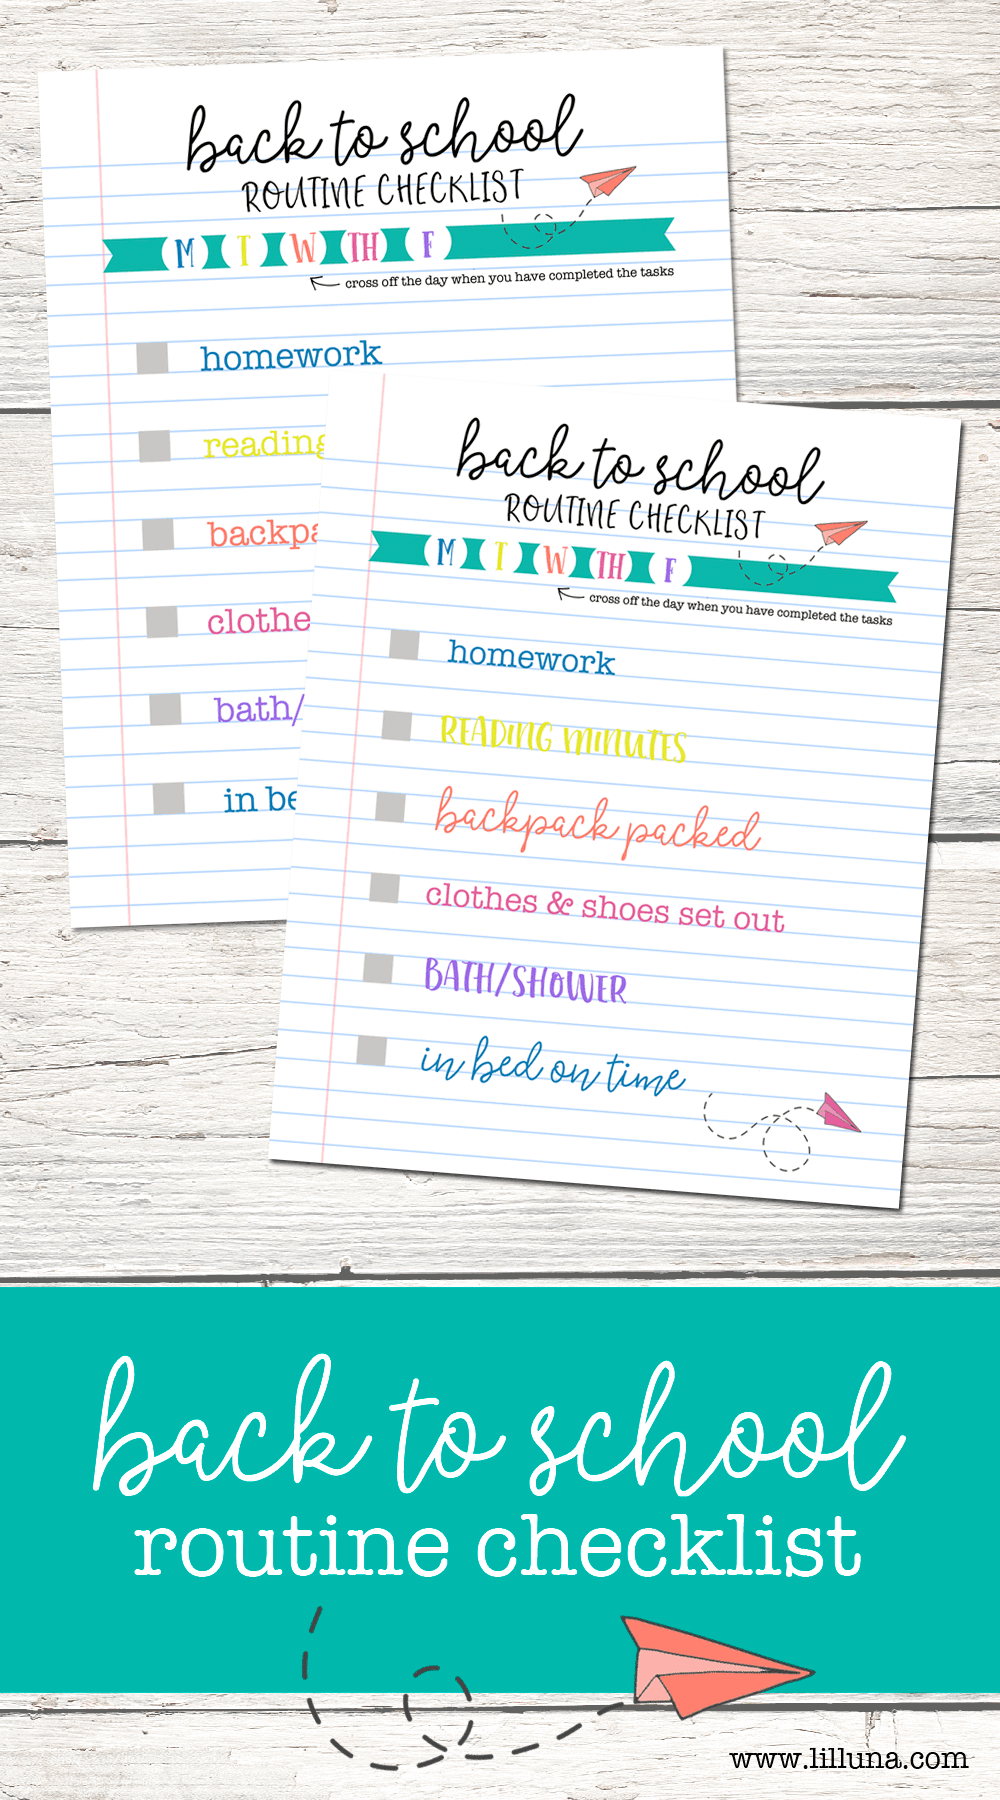 FREE Back 2 School Routine Checklist - help the kids get back in a routine with this free printable.